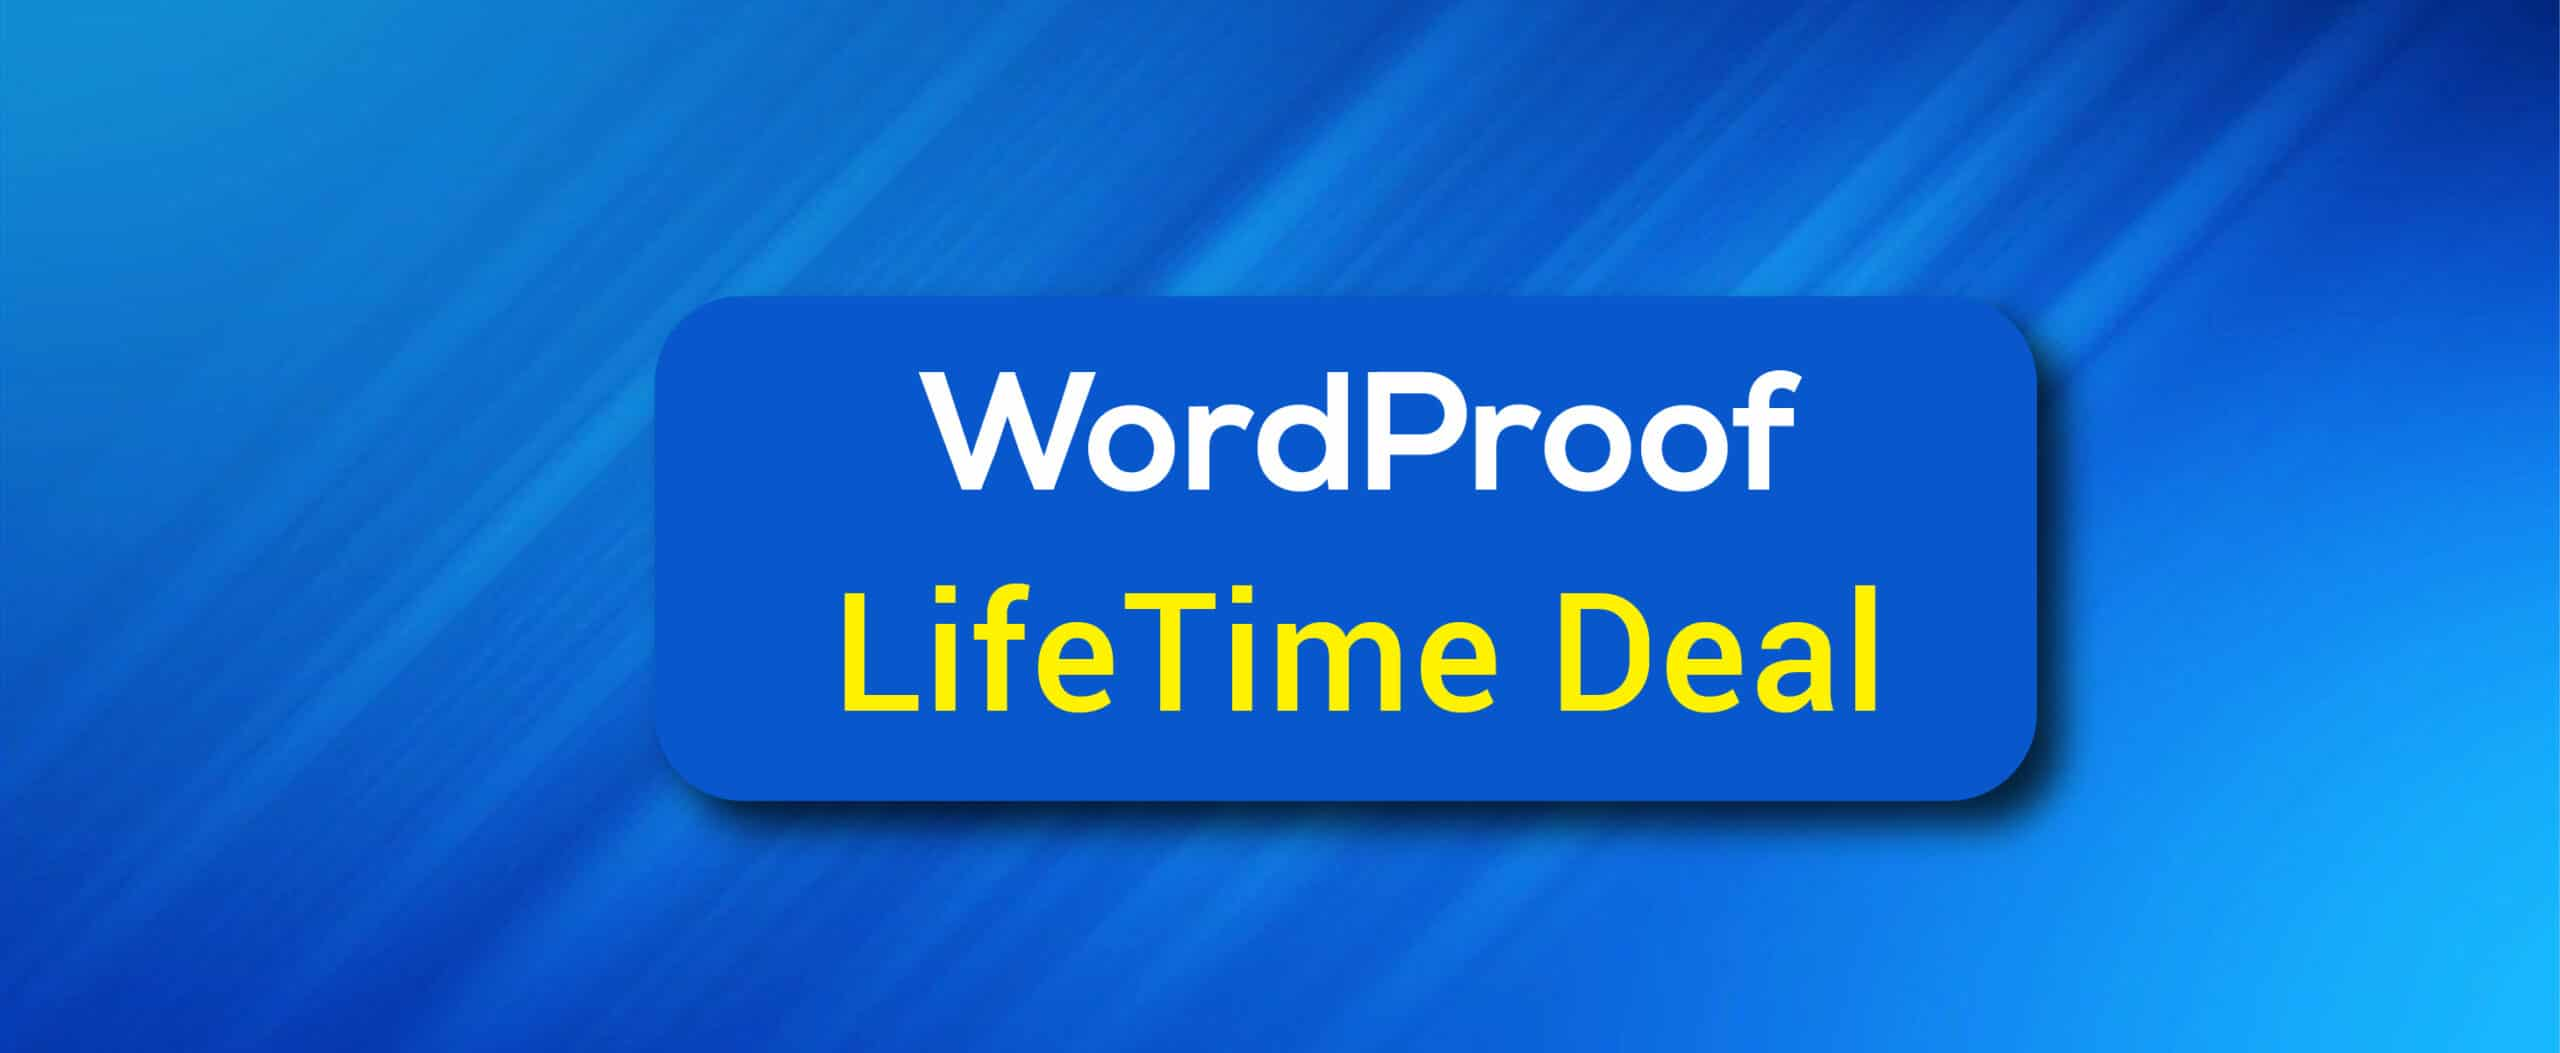 WordProof Lifetime Deal And Reviews, Details, Pricing